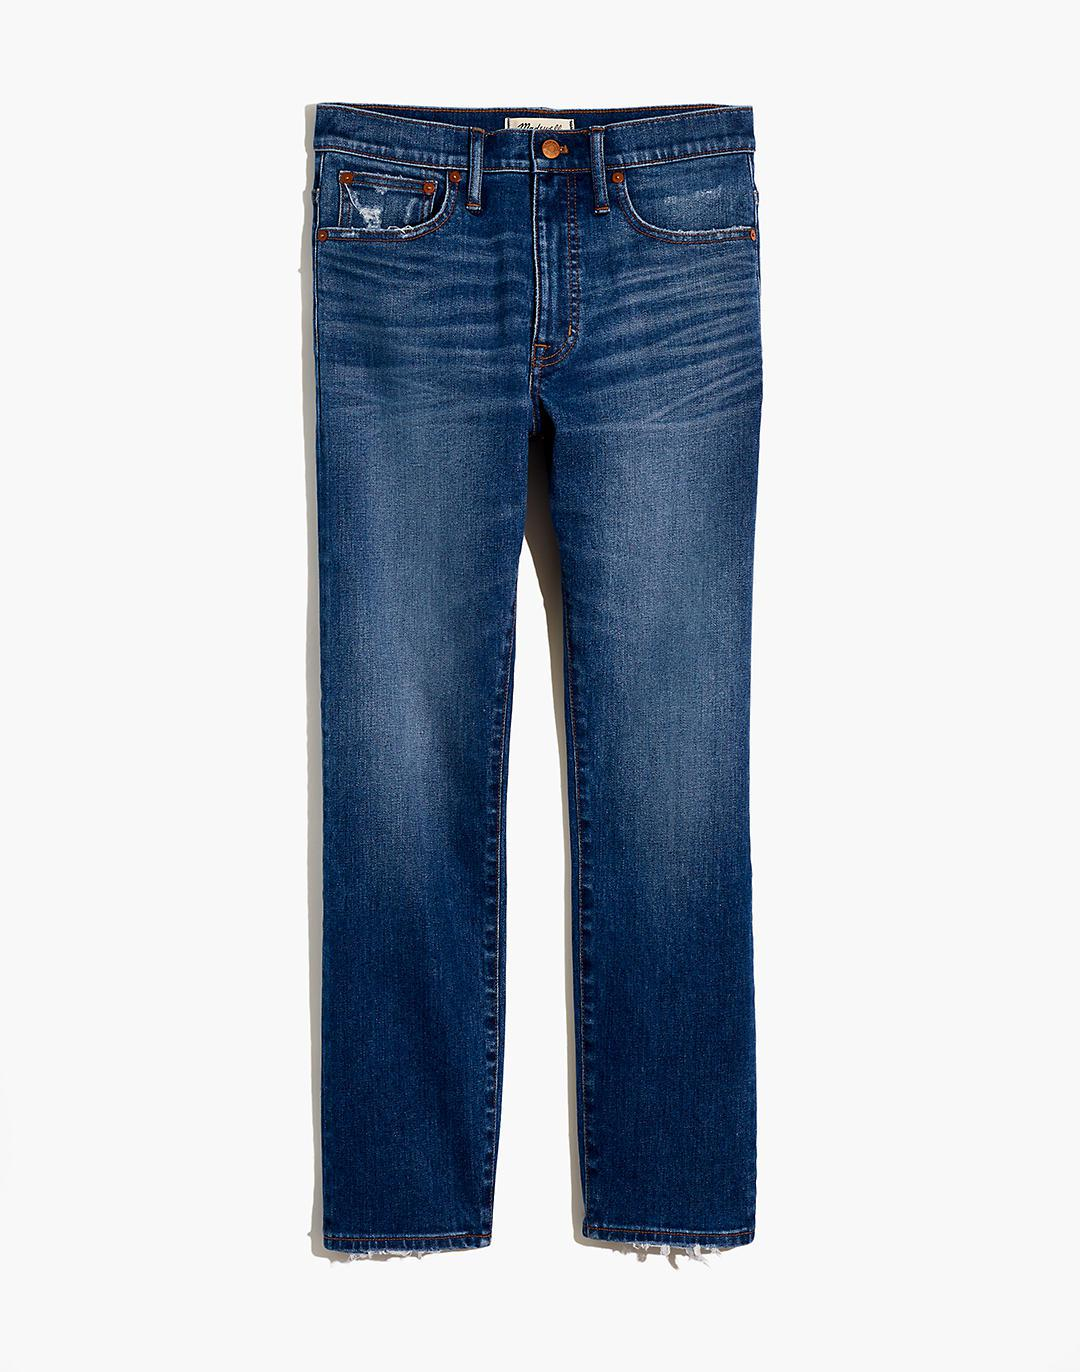 Tall Classic Straight Jeans: Selvedge Edition 4